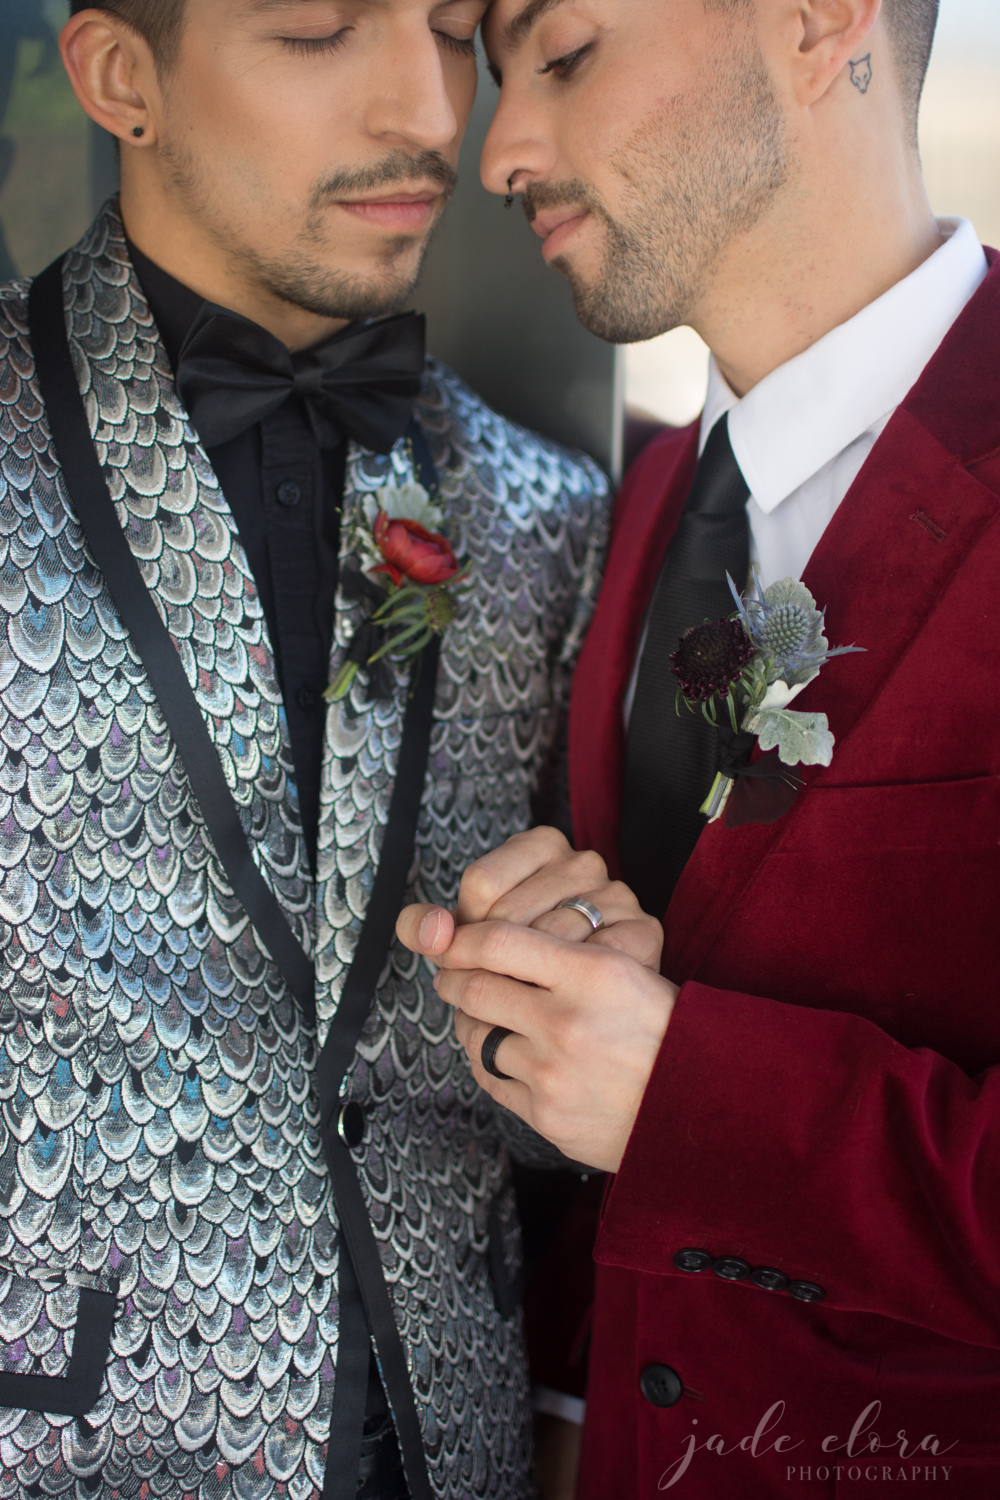 Gay Couple Shares Intimate Moment in Wedding Attire